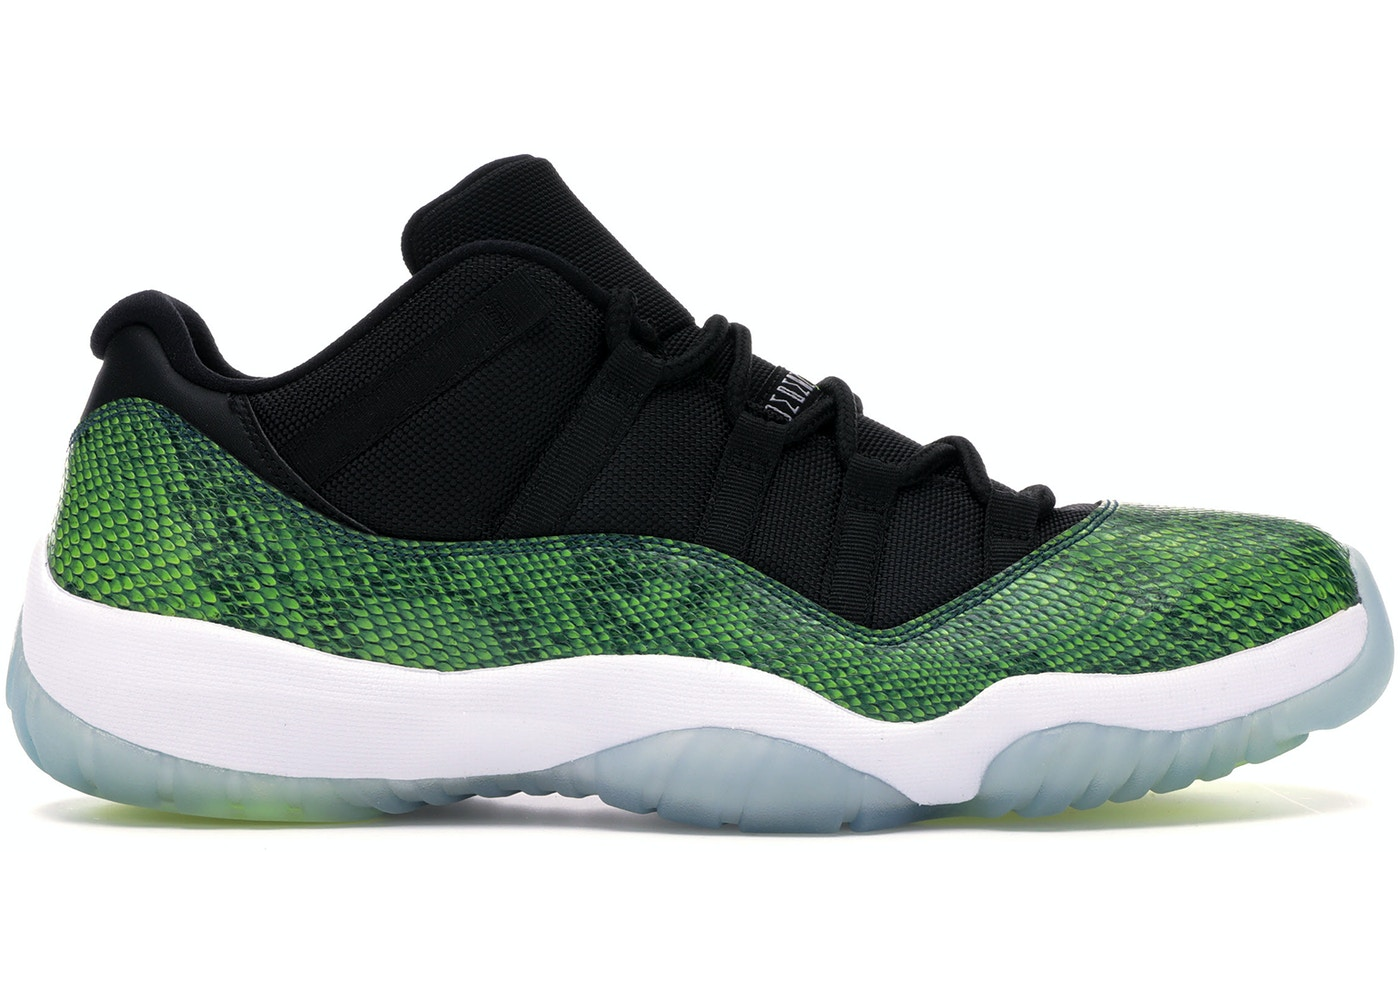 9a05e617e6ca Jordan 11 Retro Low Green Snakeskin - 528895-033